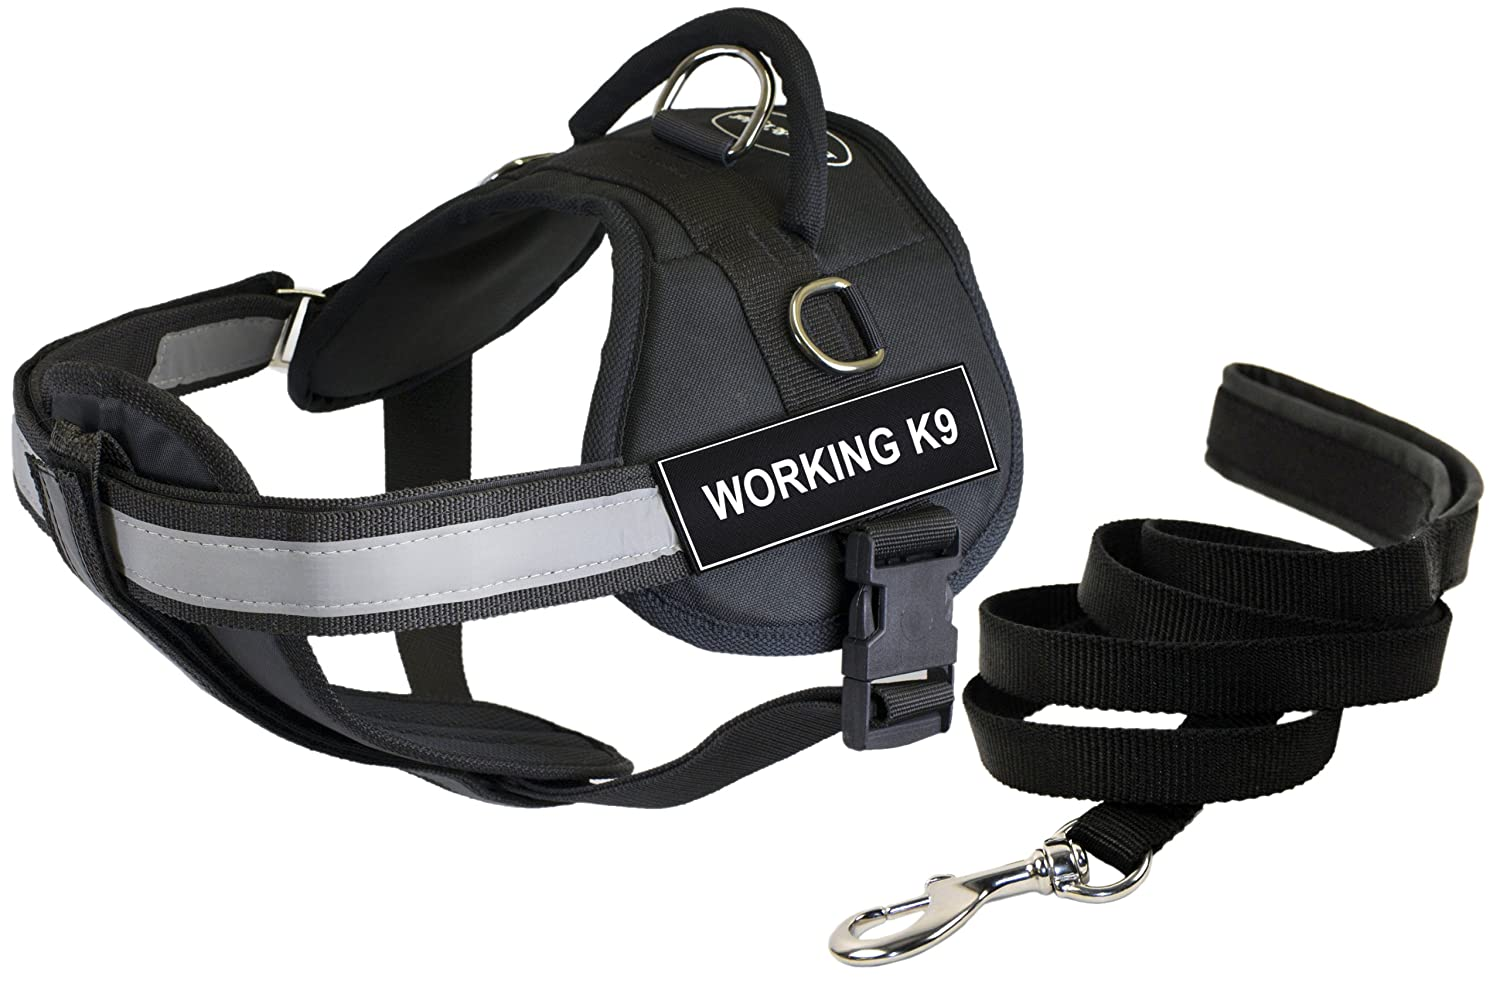 Dean and Tyler Bundle DT Works Harness w Padded Chest, Working K9, Small (25  34 ) + Padded Puppy Leash, 6 FT Stainless Snap Black